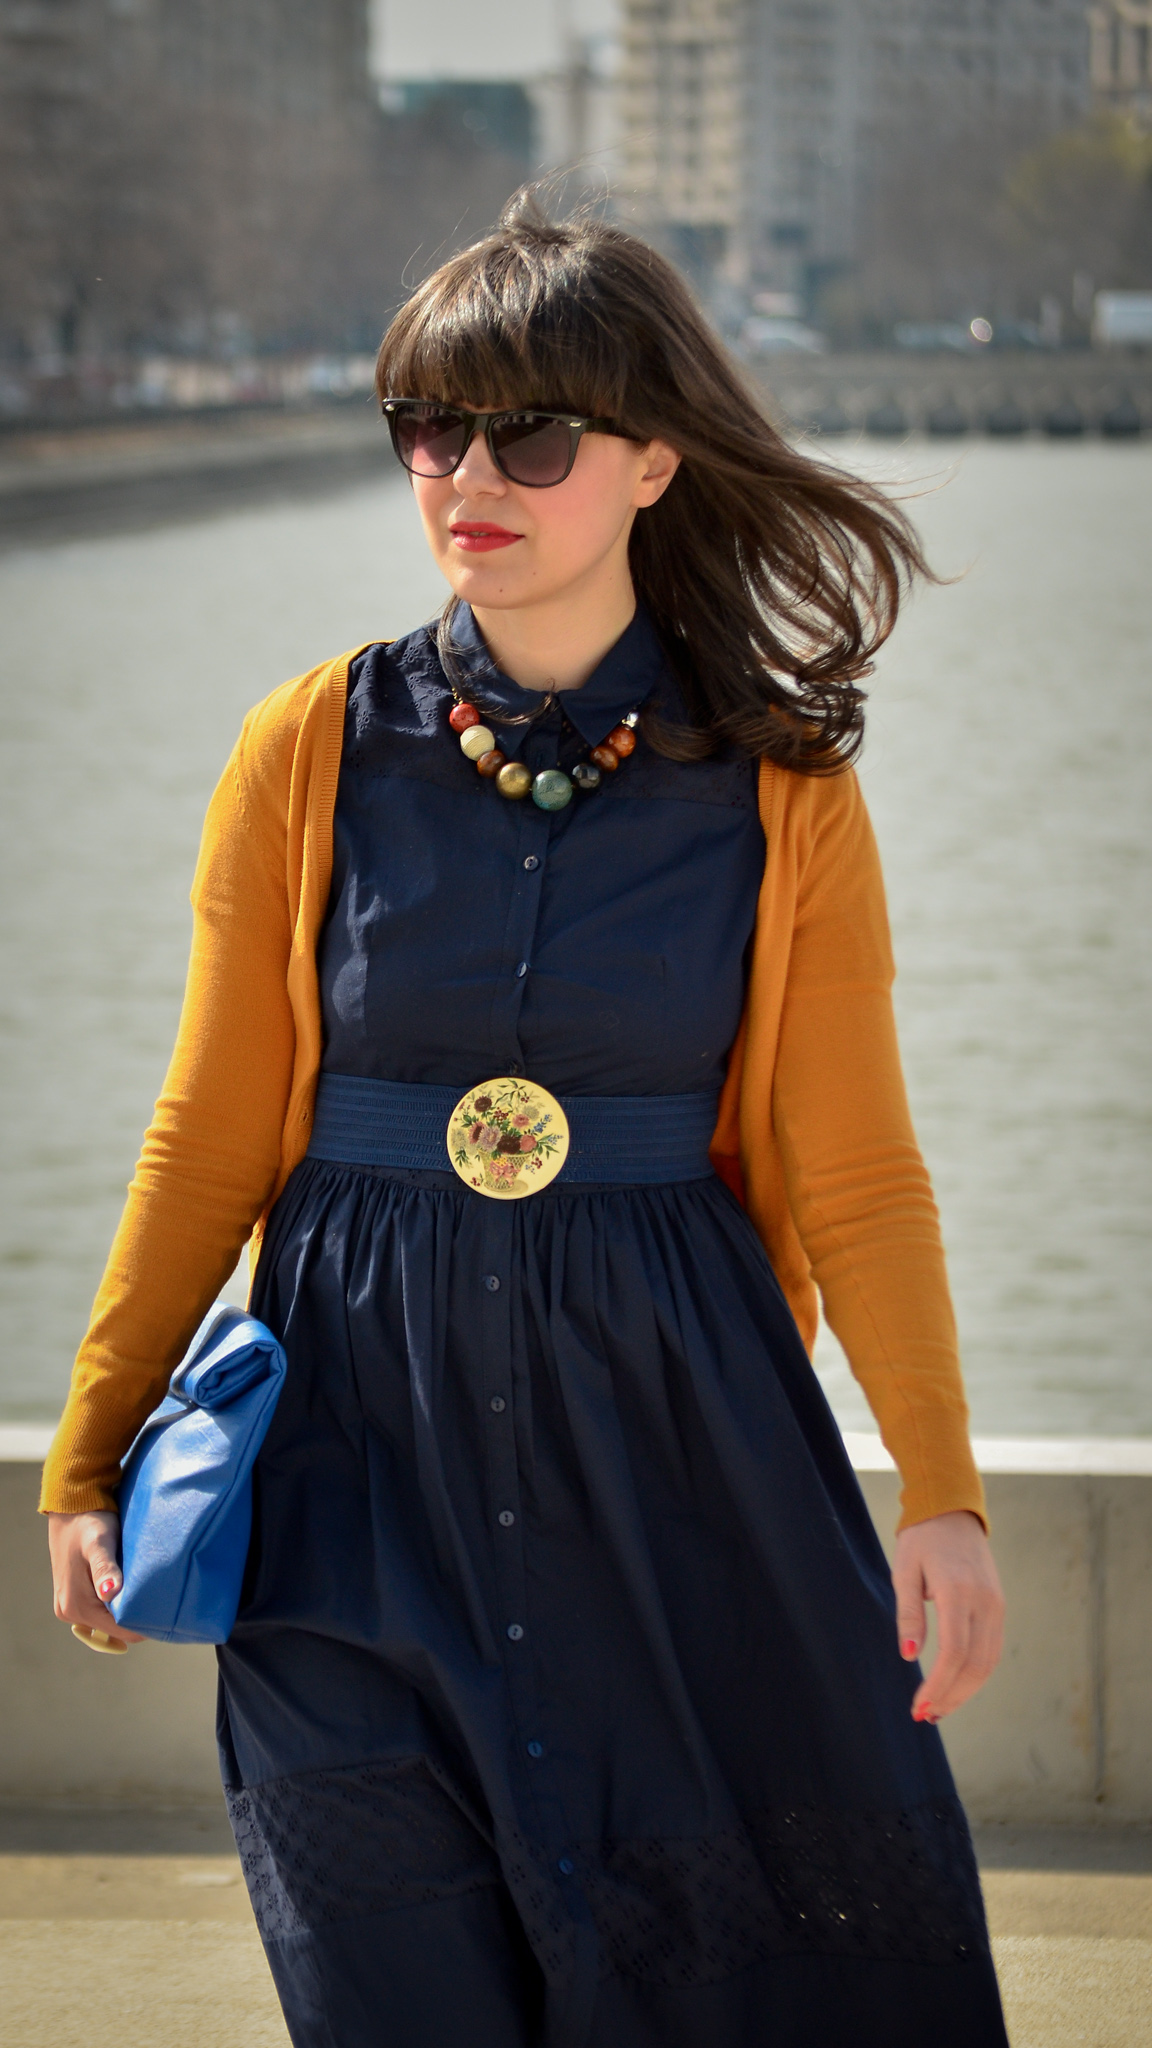 spring outfit navy dress 50s style mustard cardigan c&a thrifted belt cobalt blue clutch new yorker poema mustard heels